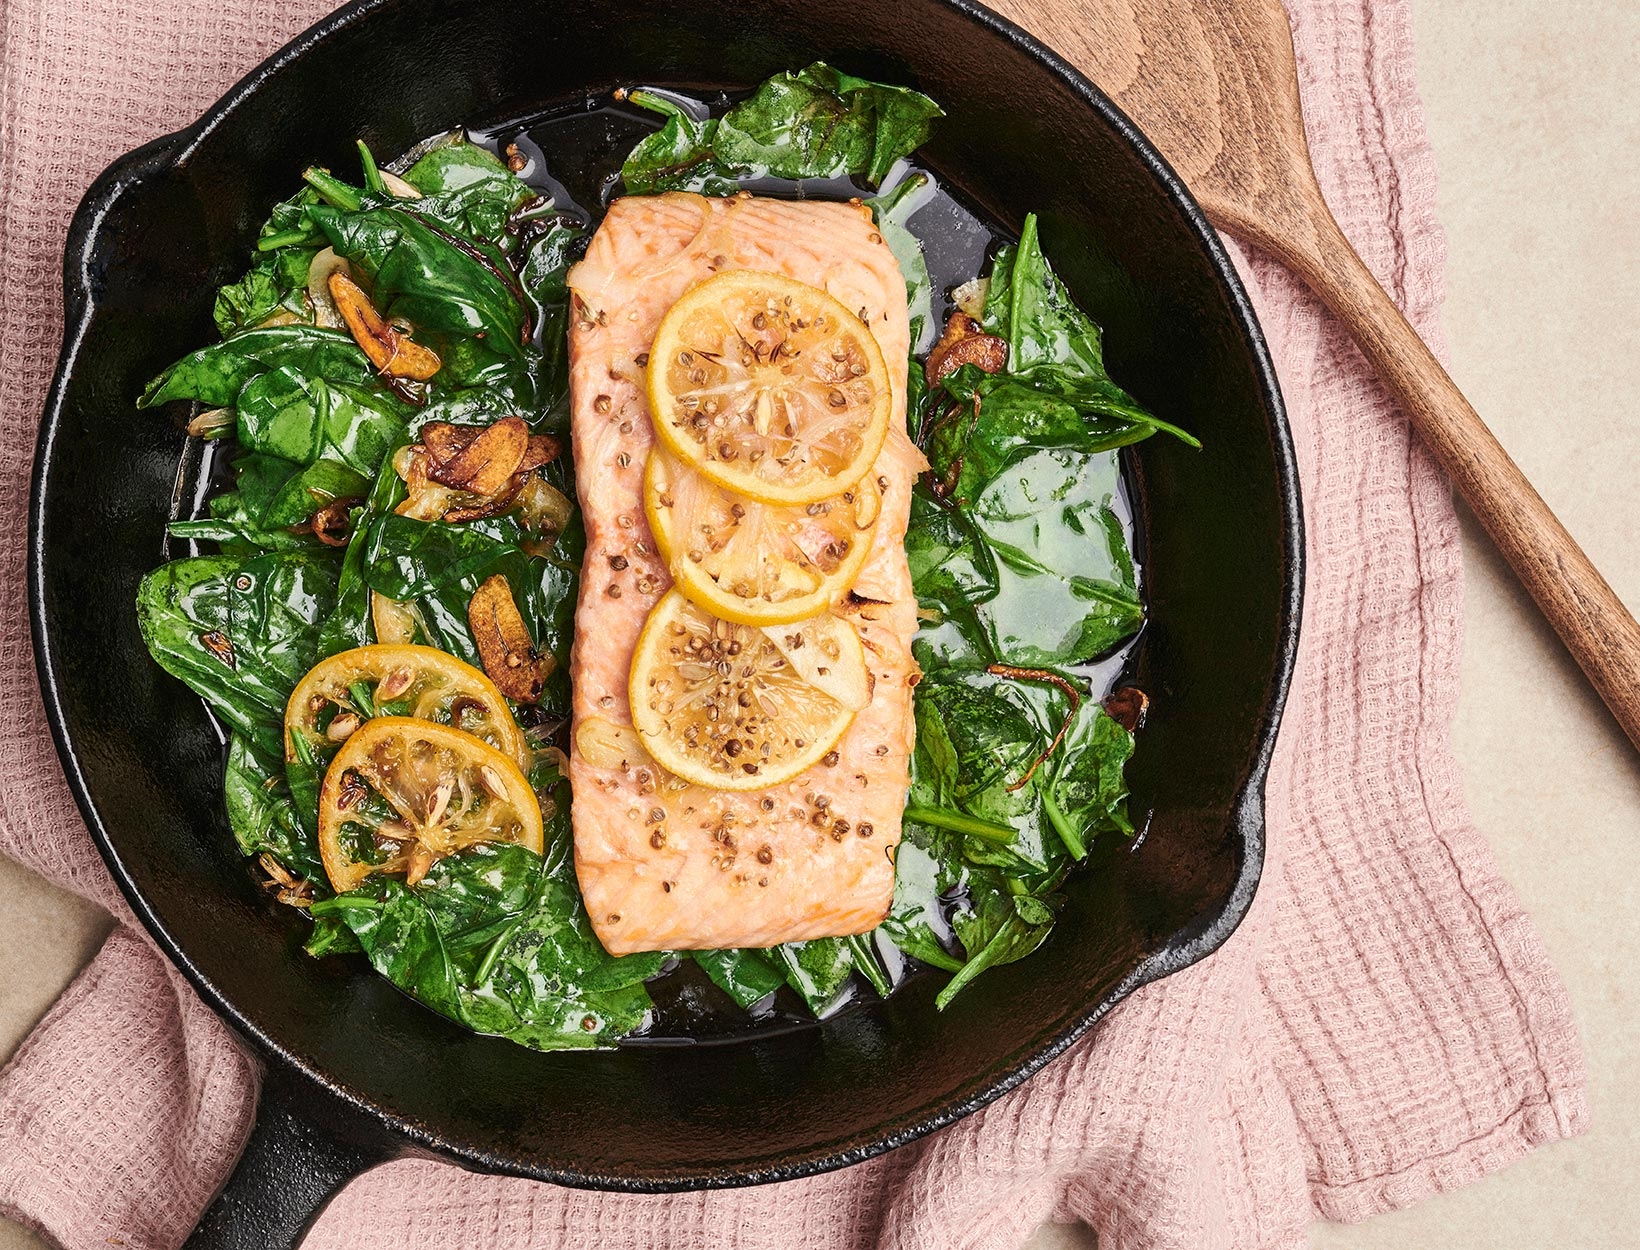 Slow-Roasted Salmon with Shallots, Garlic, Coriander, and Lemon